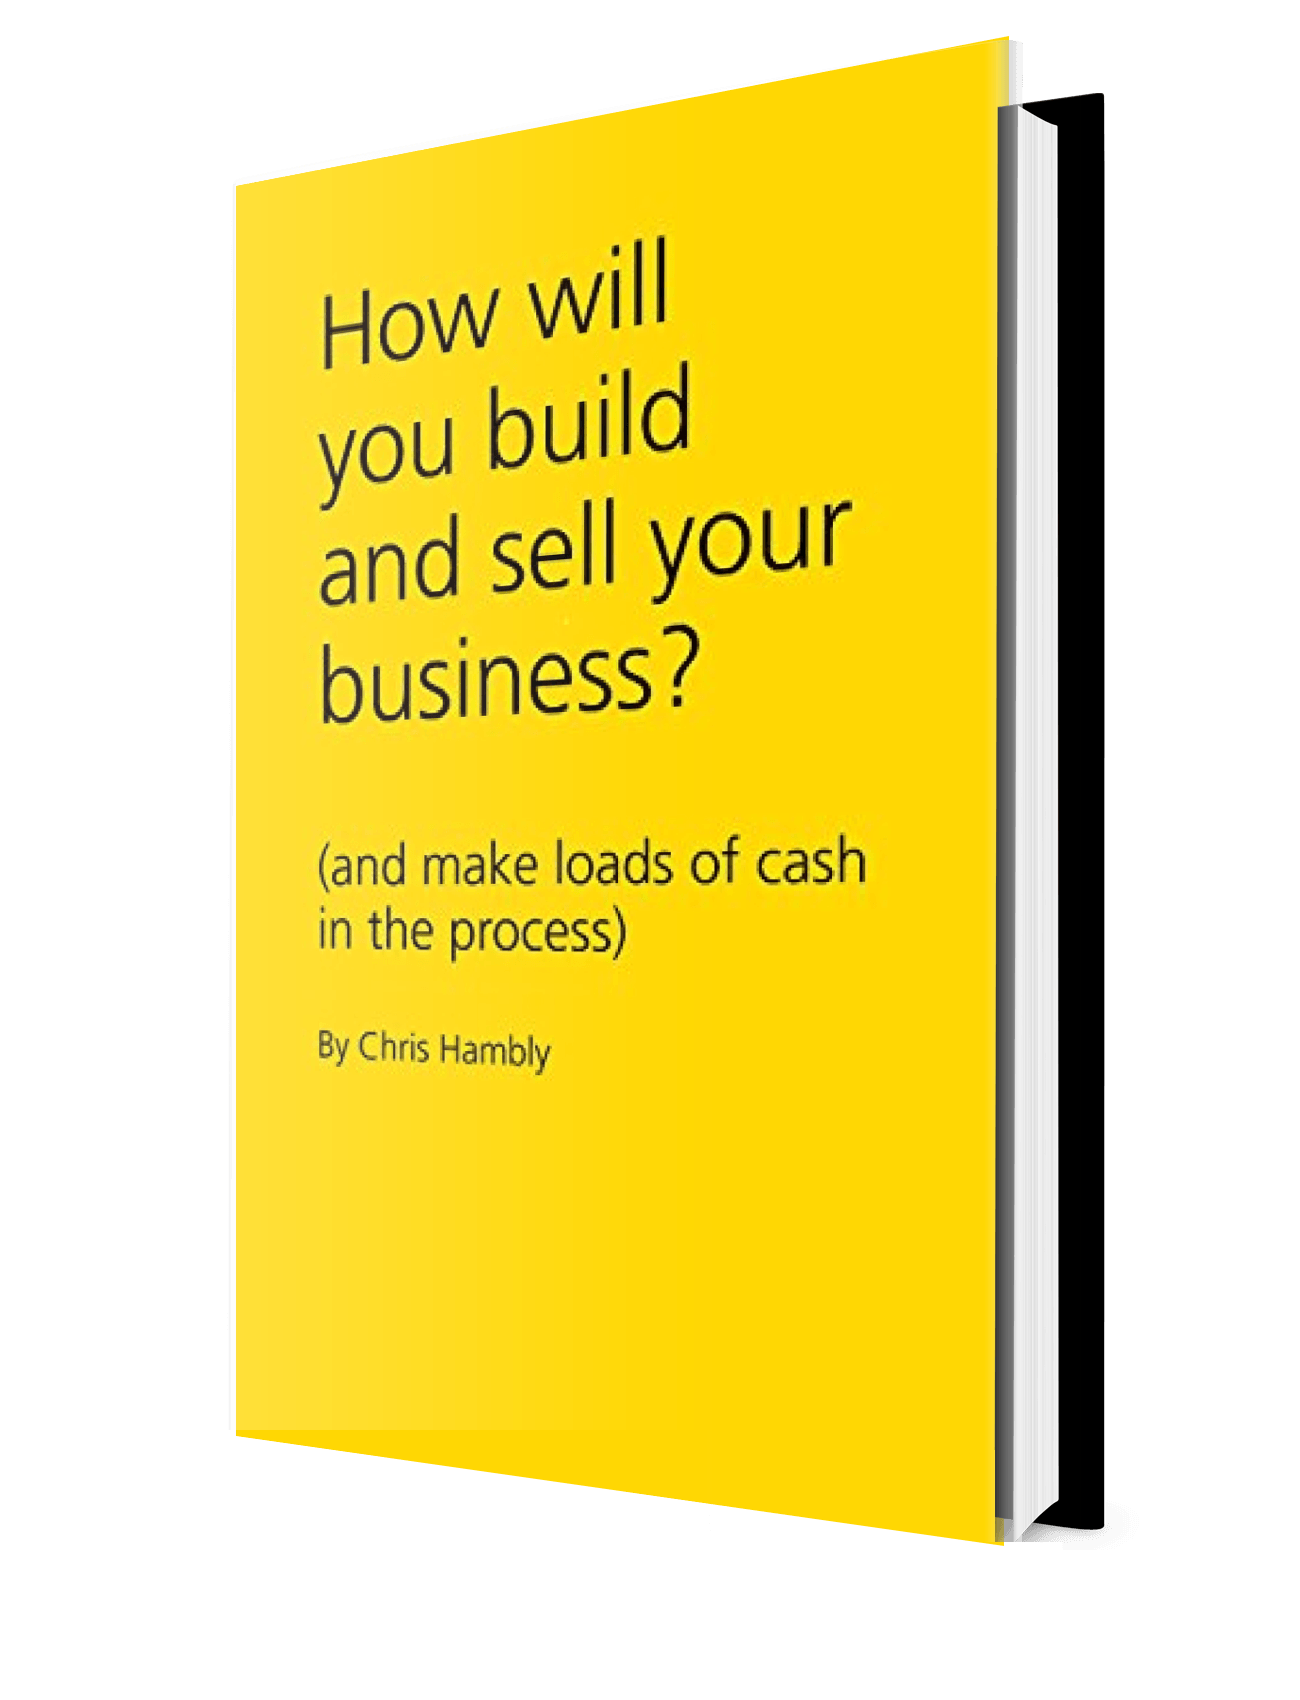 Build And Sell Your Business